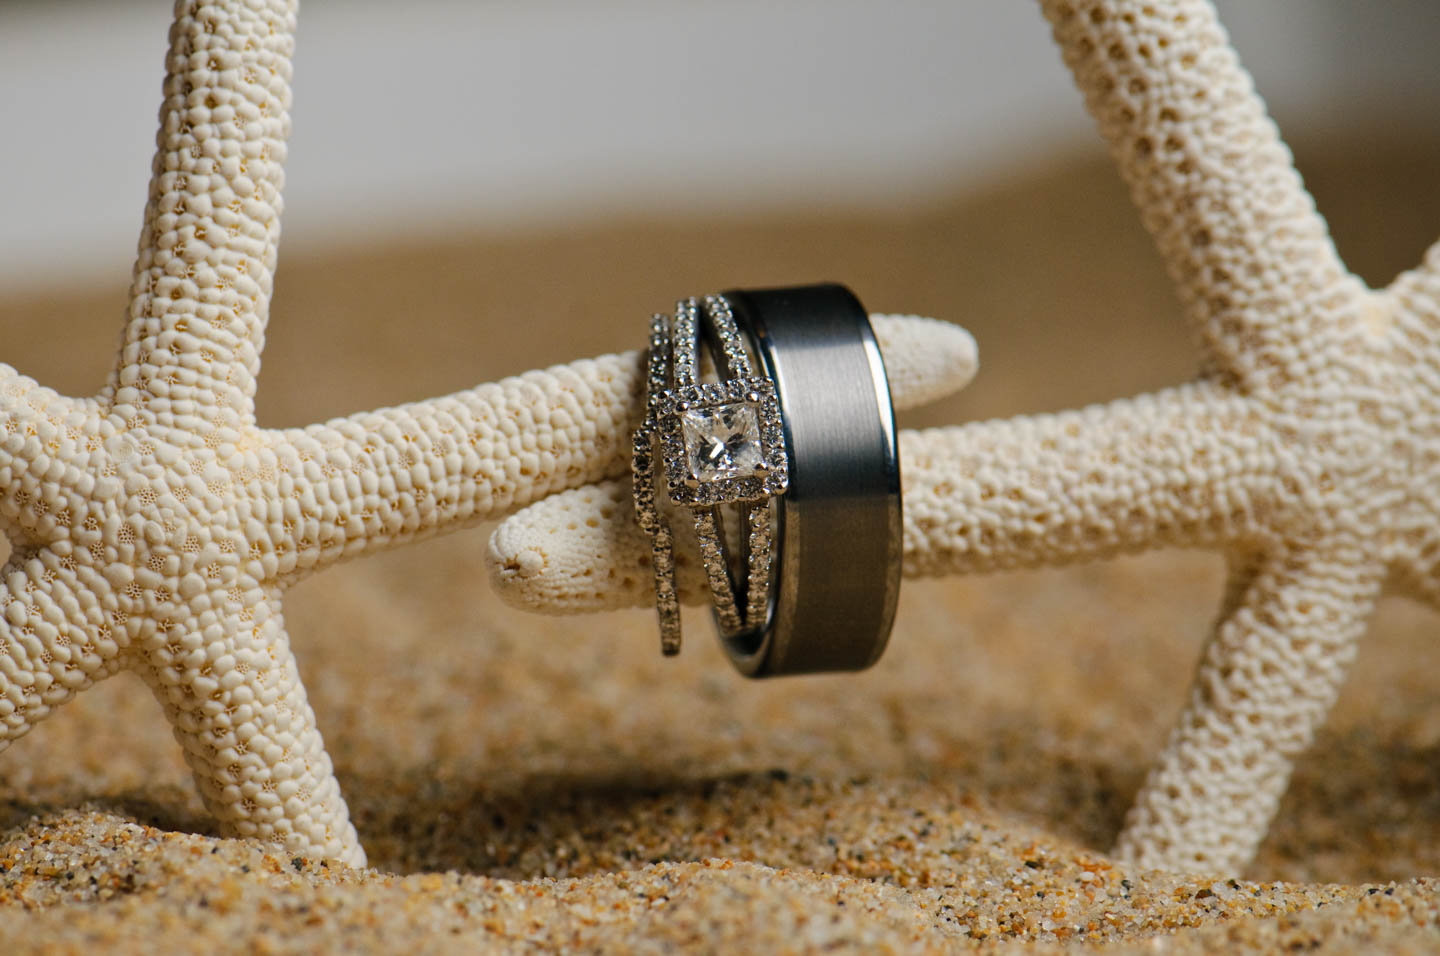 wedding bentwoodjewelry custom sands canadian macassar inlay ring rings with ebony beach made by wood handmade